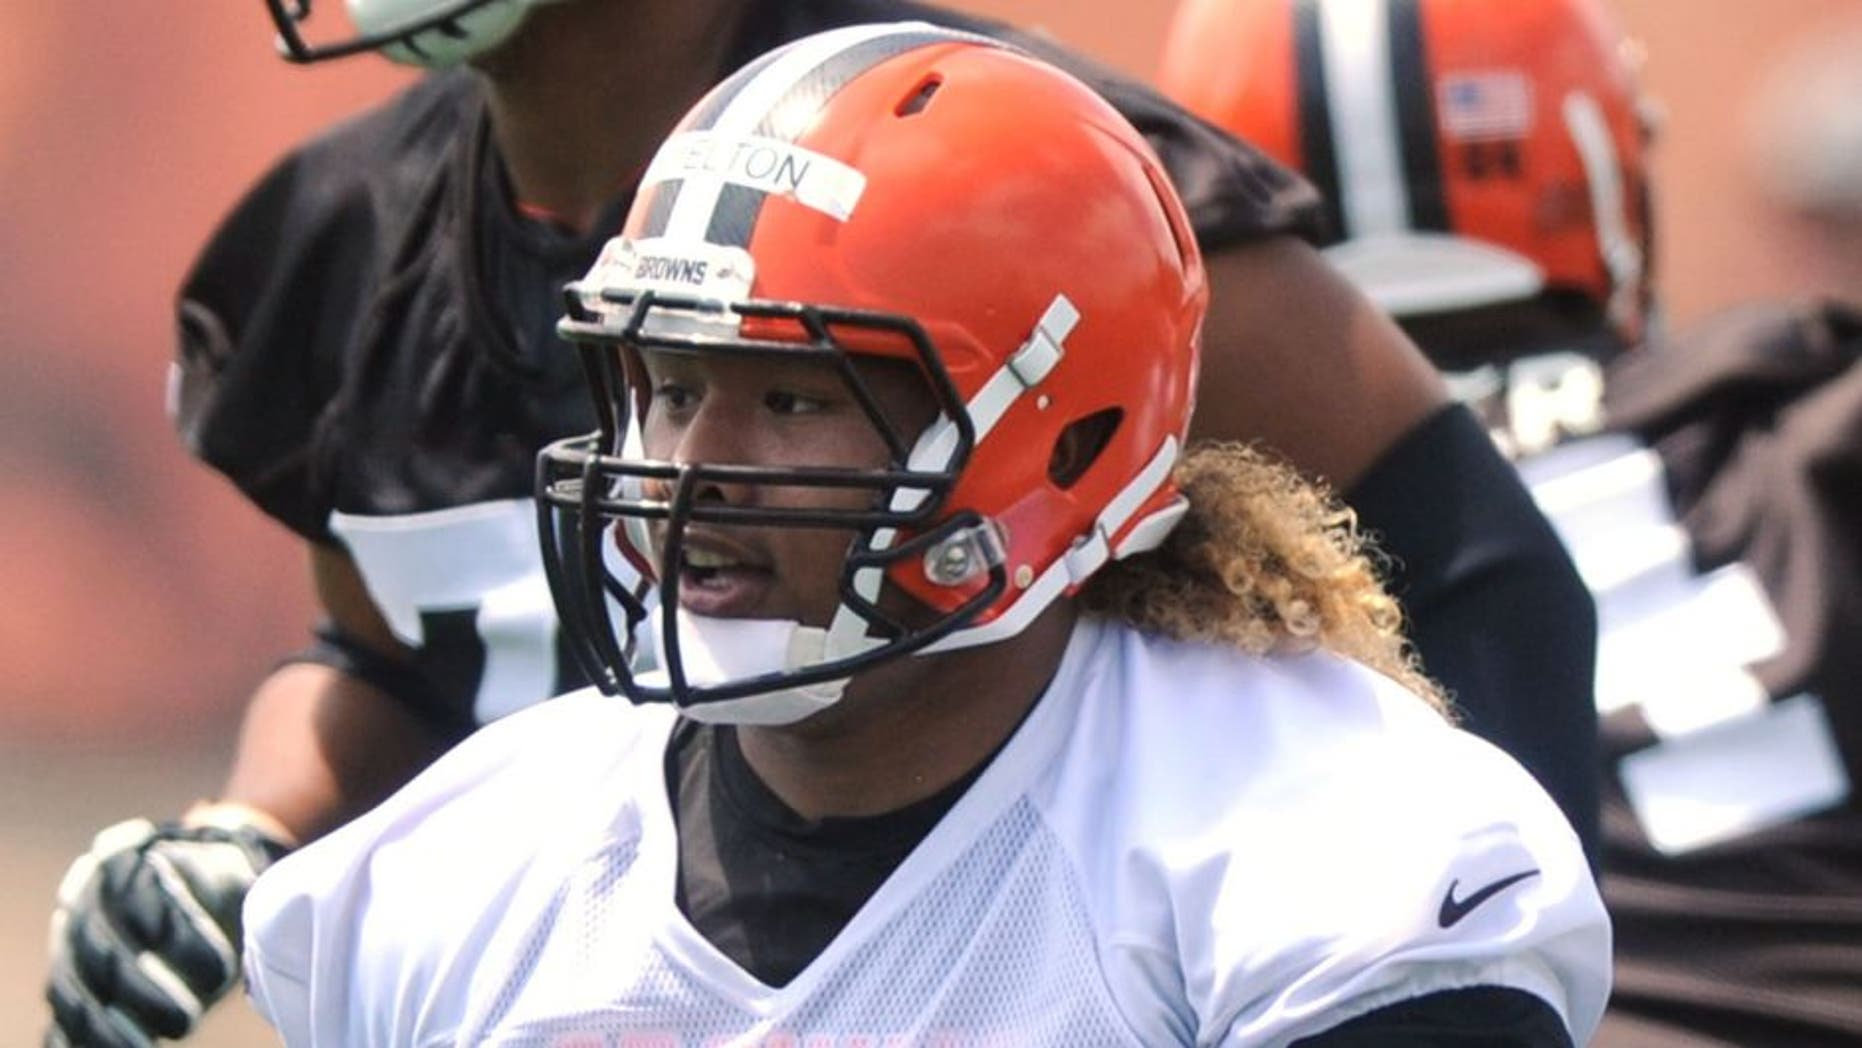 Jun 16, 2015; Berea, OH, USA; Cleveland Browns defensive lineman Danny Shelton (71) during minicamp at the Cleveland Browns practice facility. Mandatory Credit: Ken Blaze-USA TODAY Sports